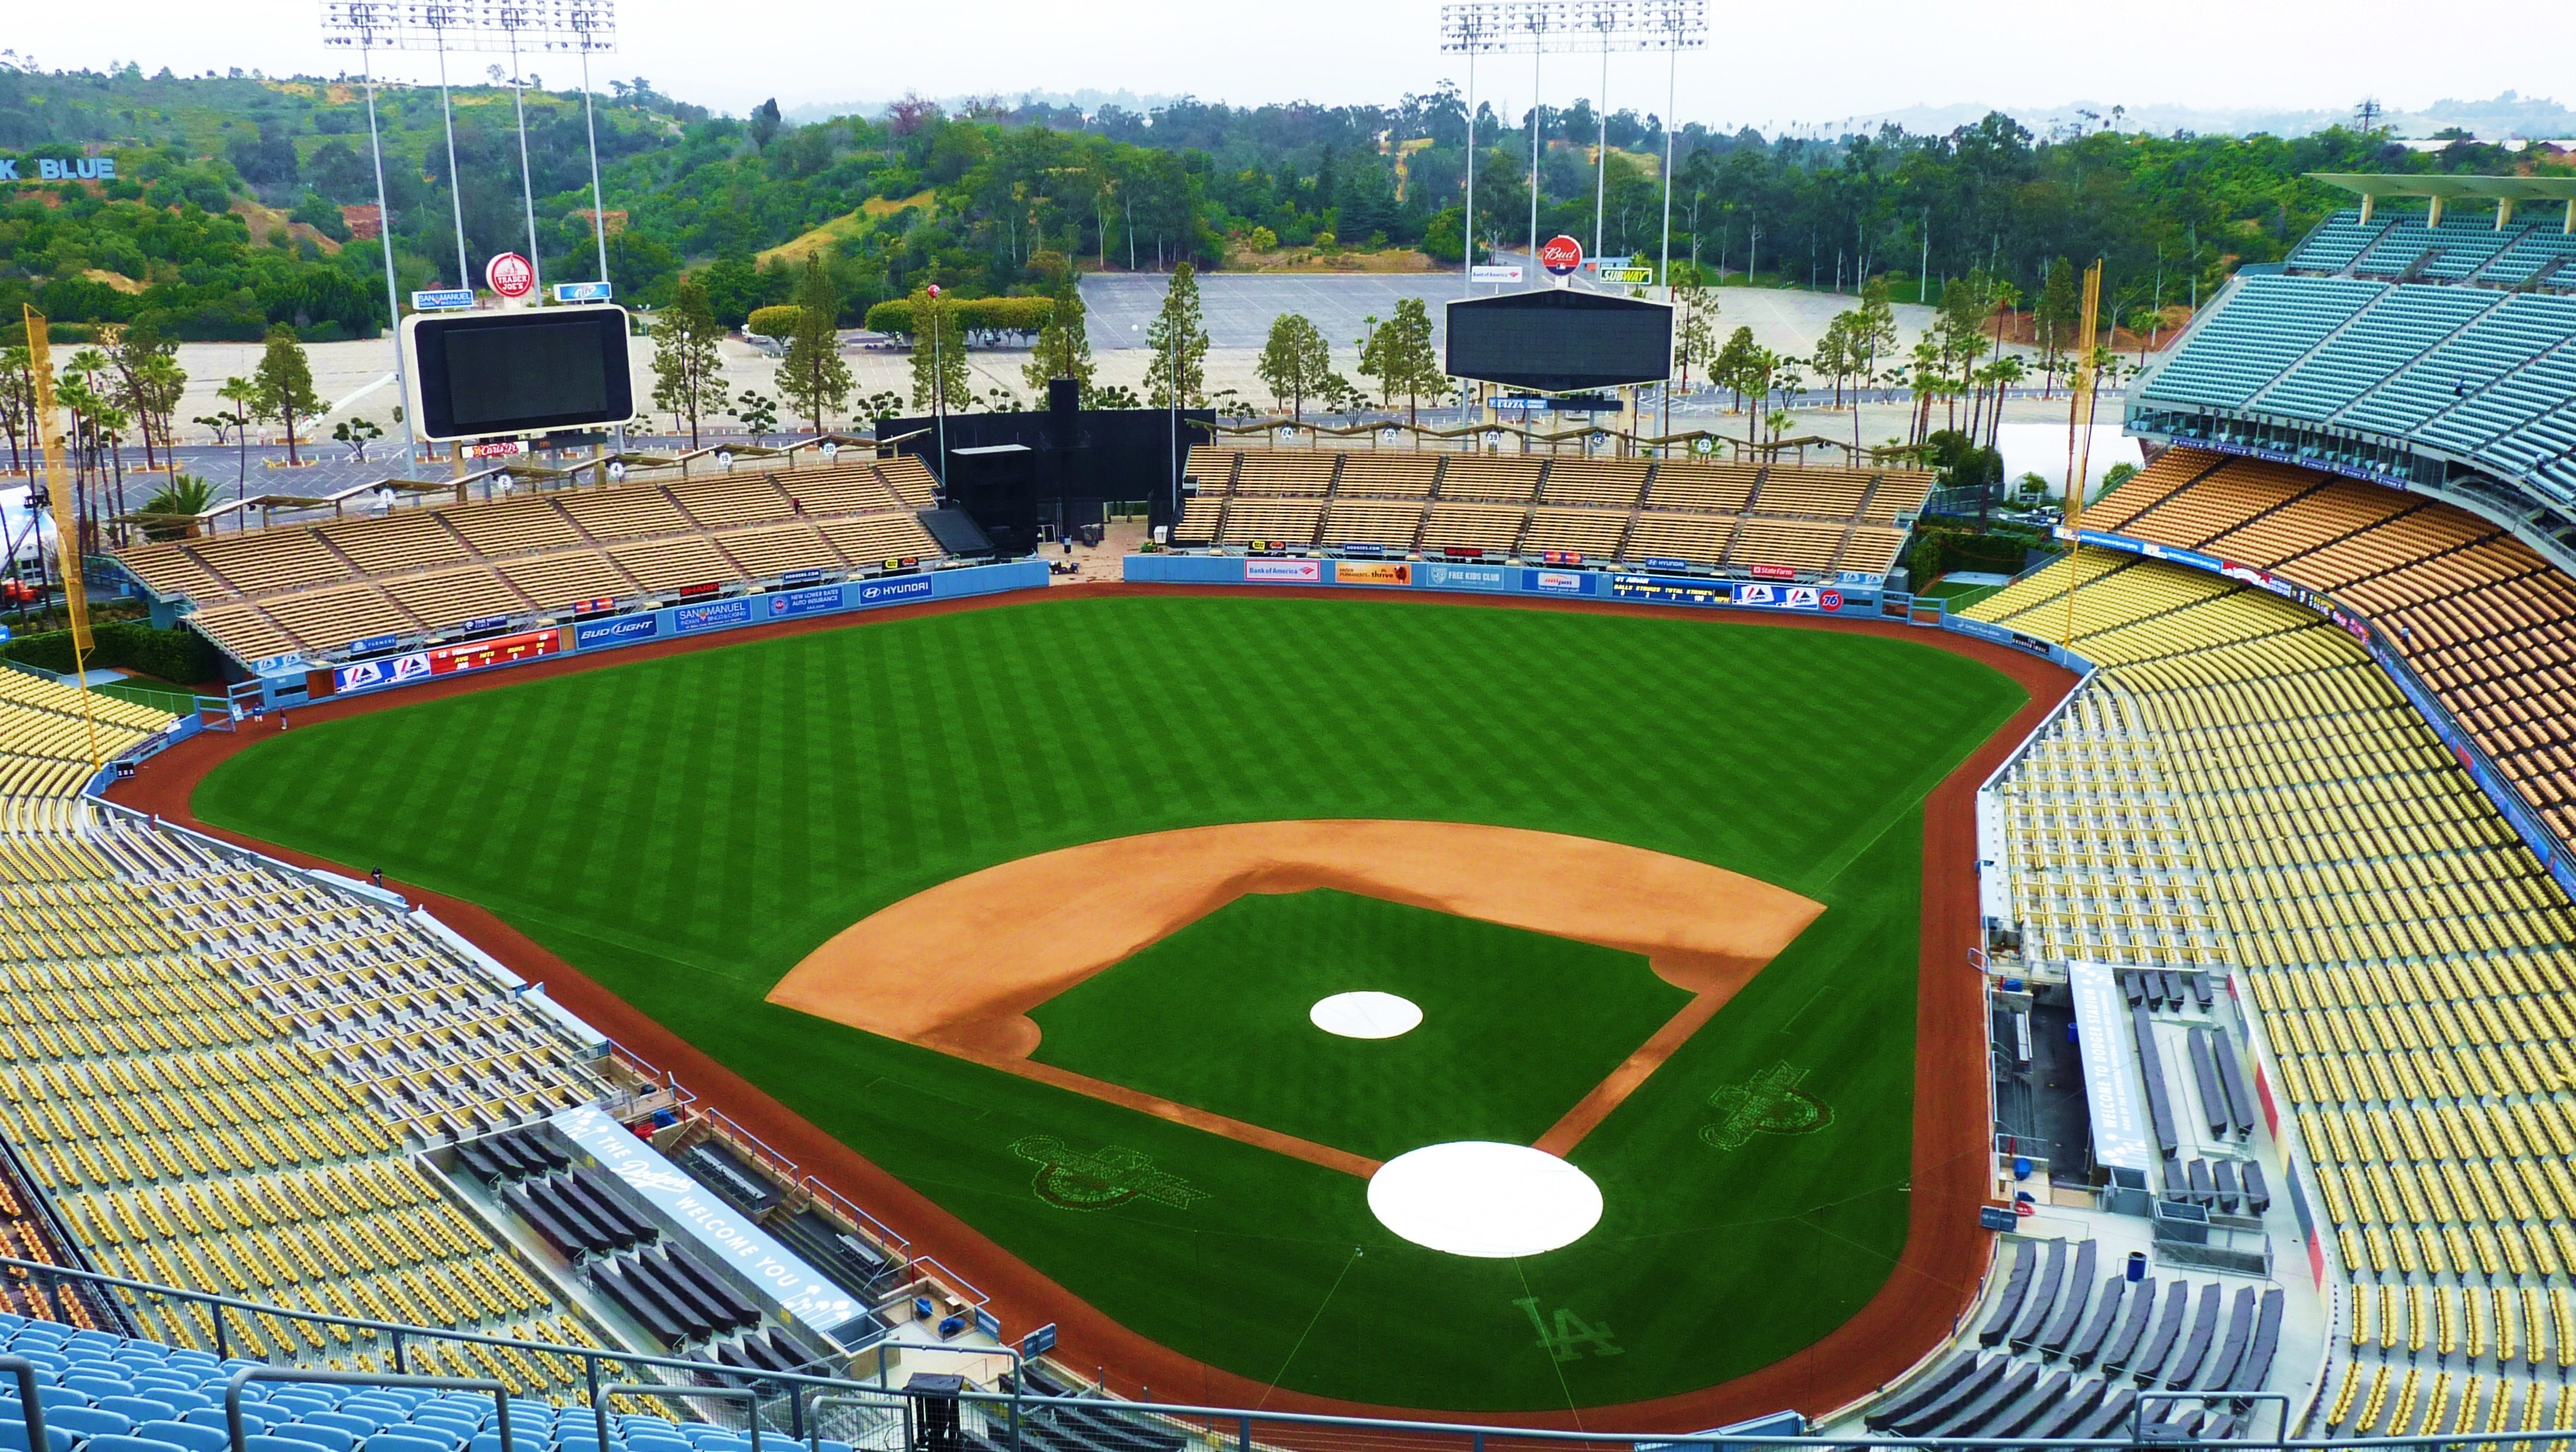 Res: 3648x2056, Dodgers Wallpapers High Defintion Desktop Download.